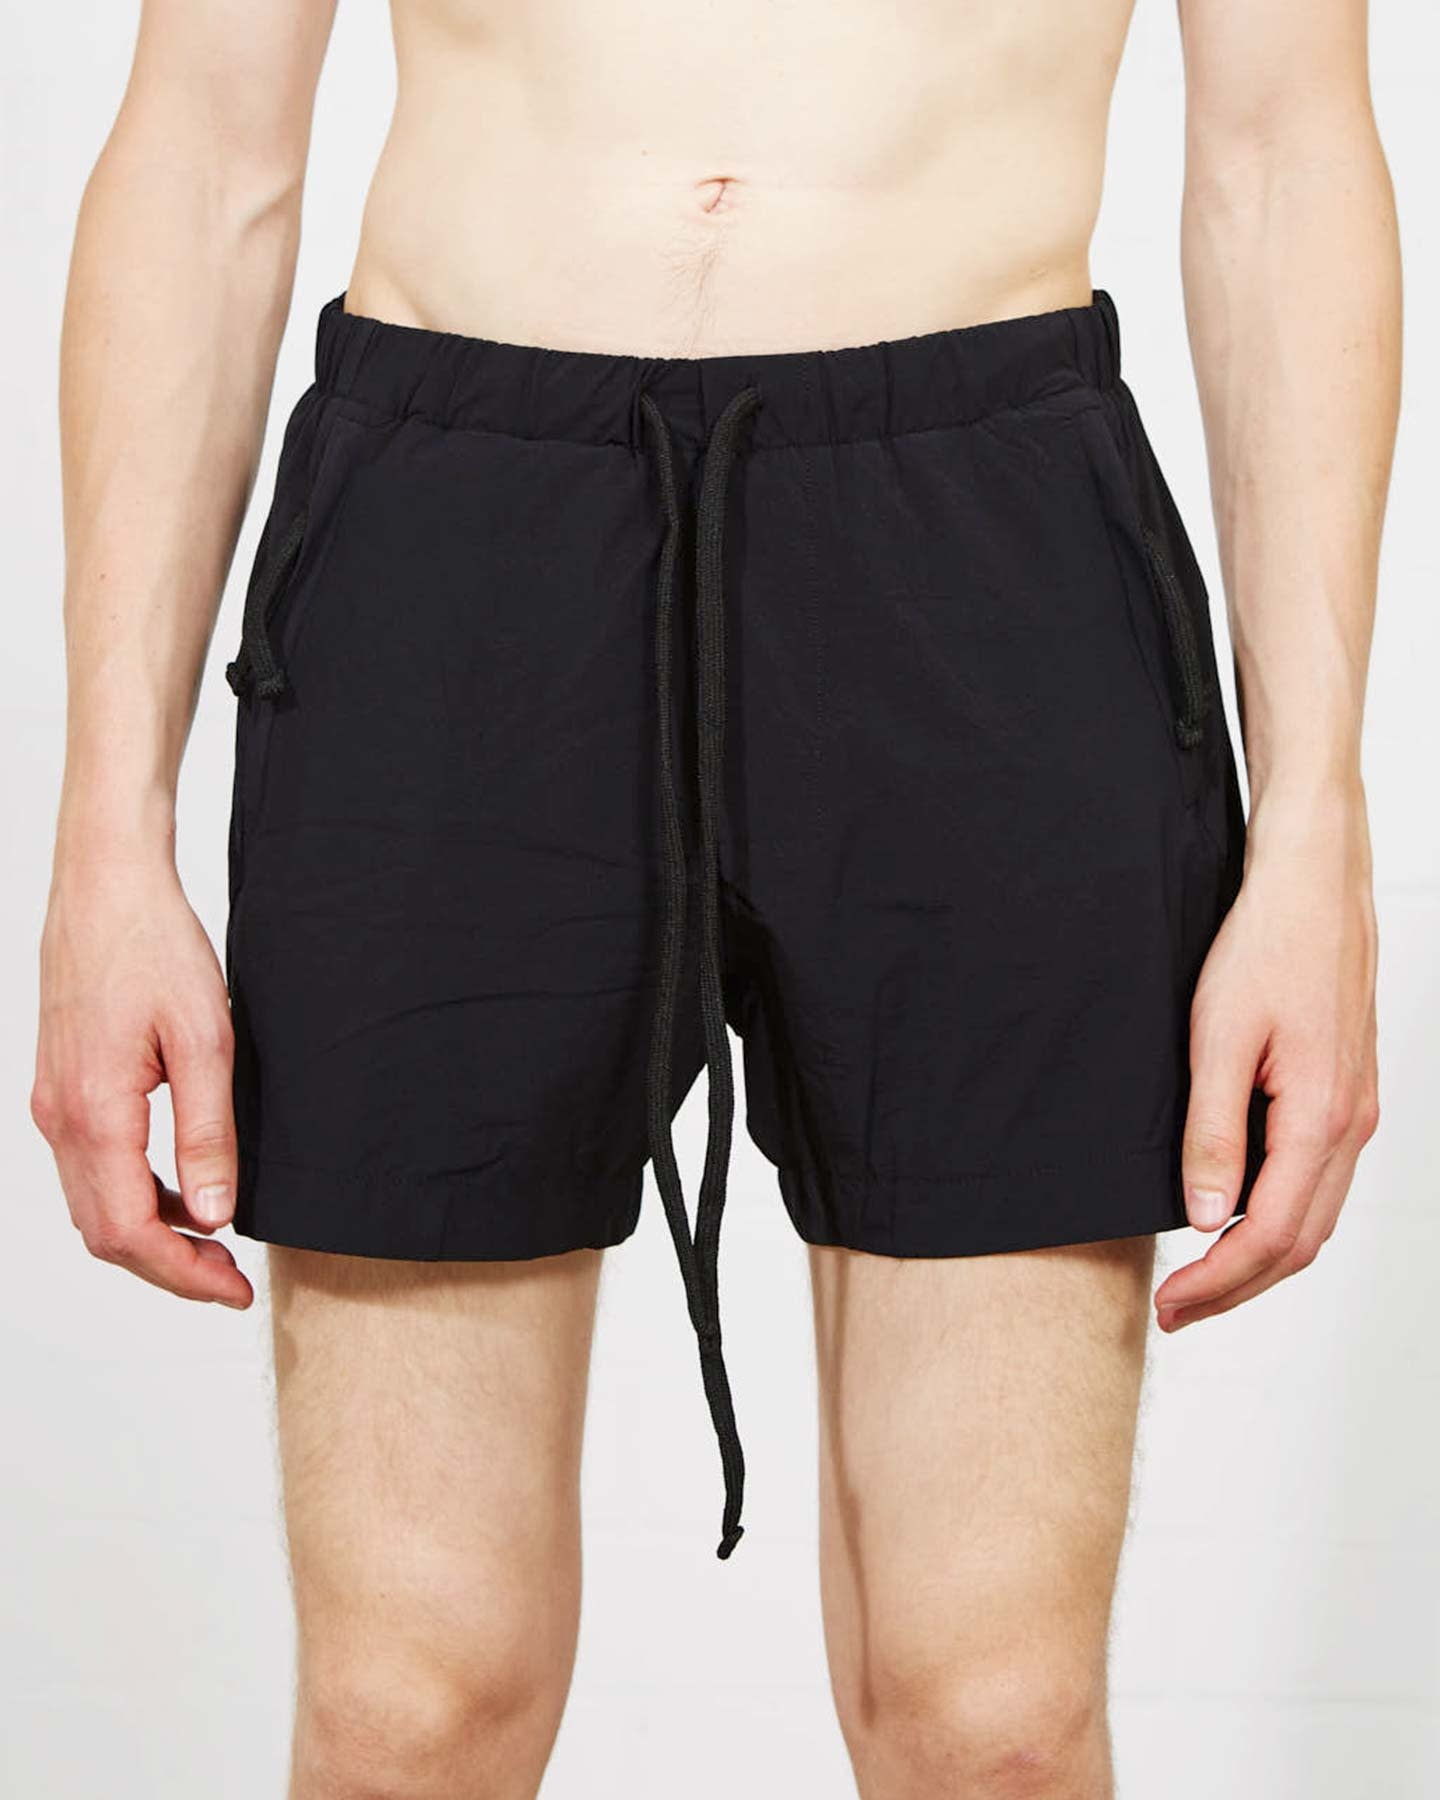 ZIP POCKET SWIM TRUNKS 21 - BLACK